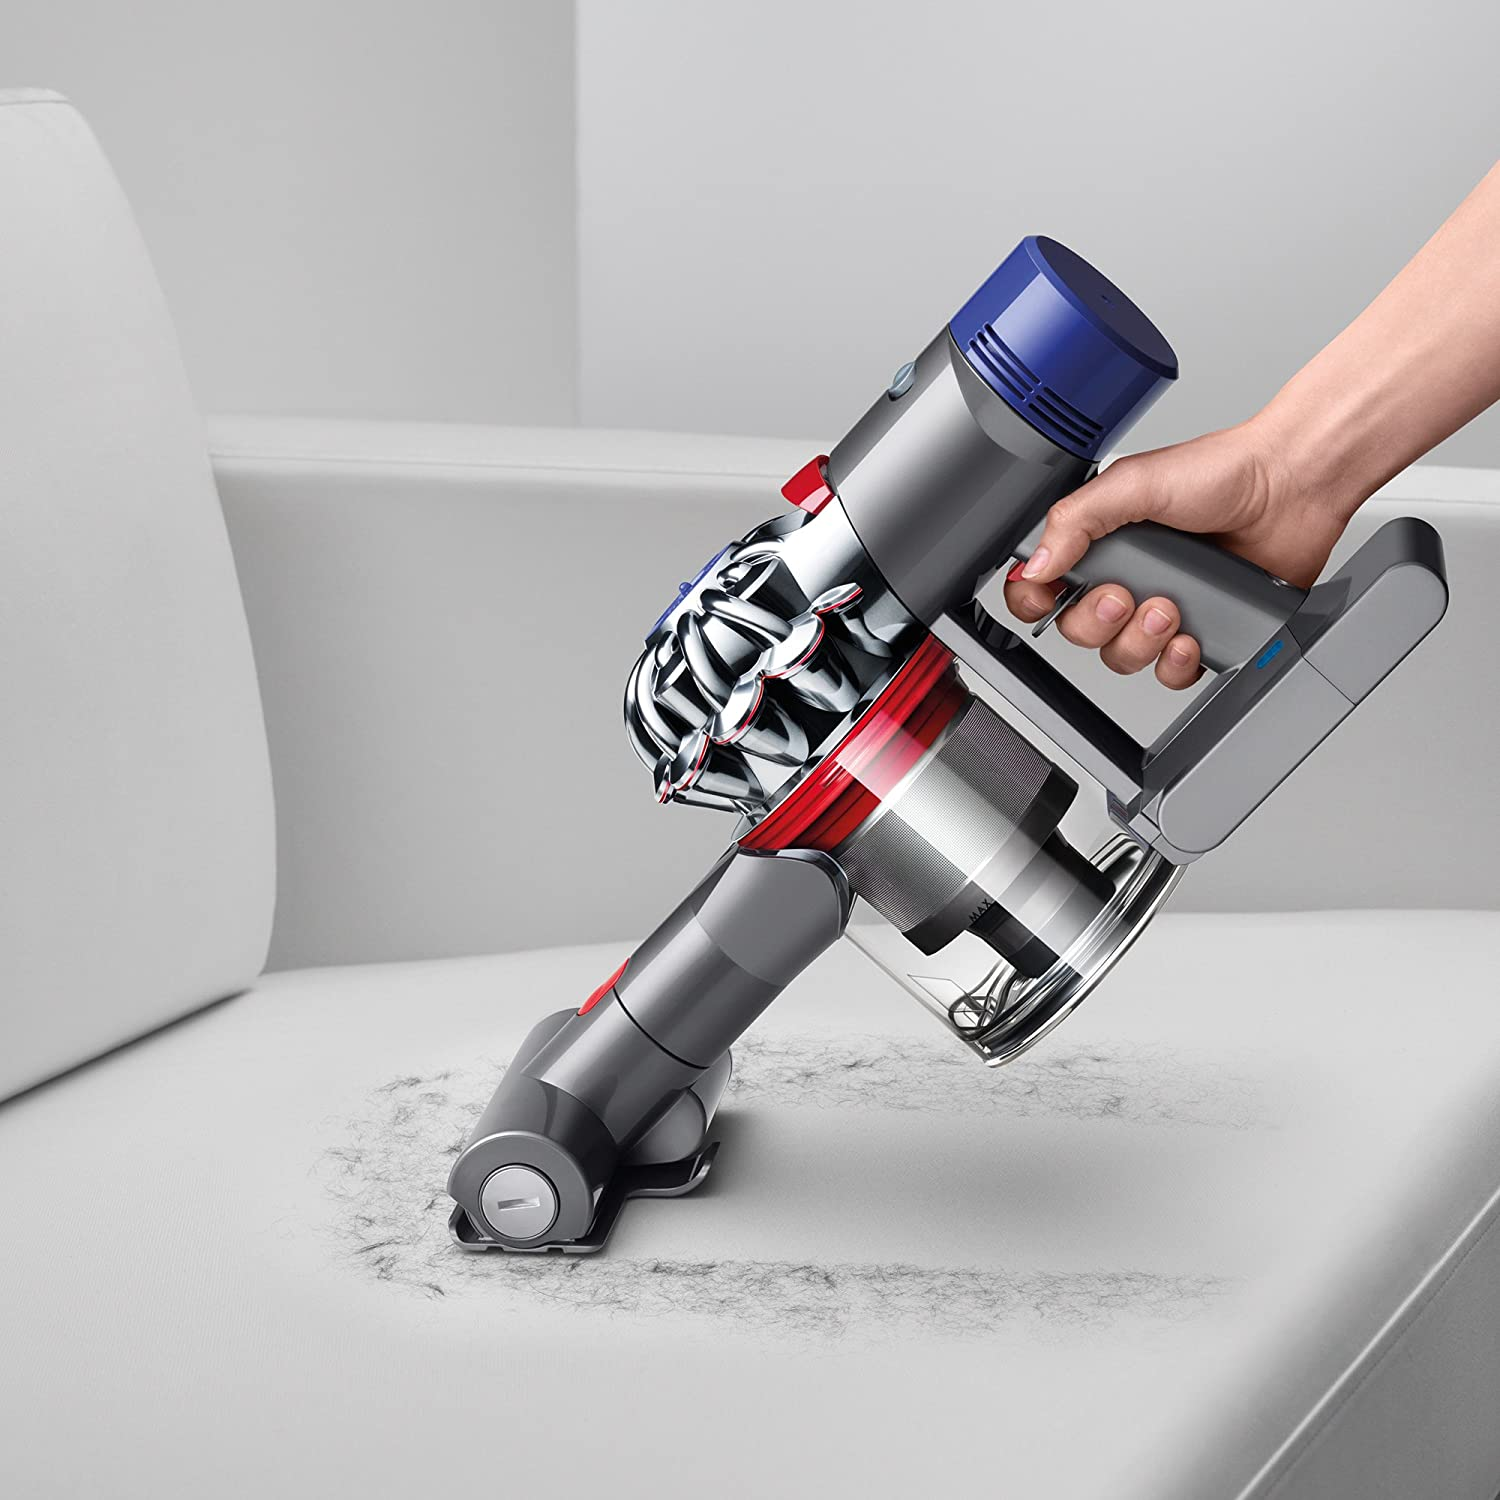 Dyson V8 vs. V10: Ease of use